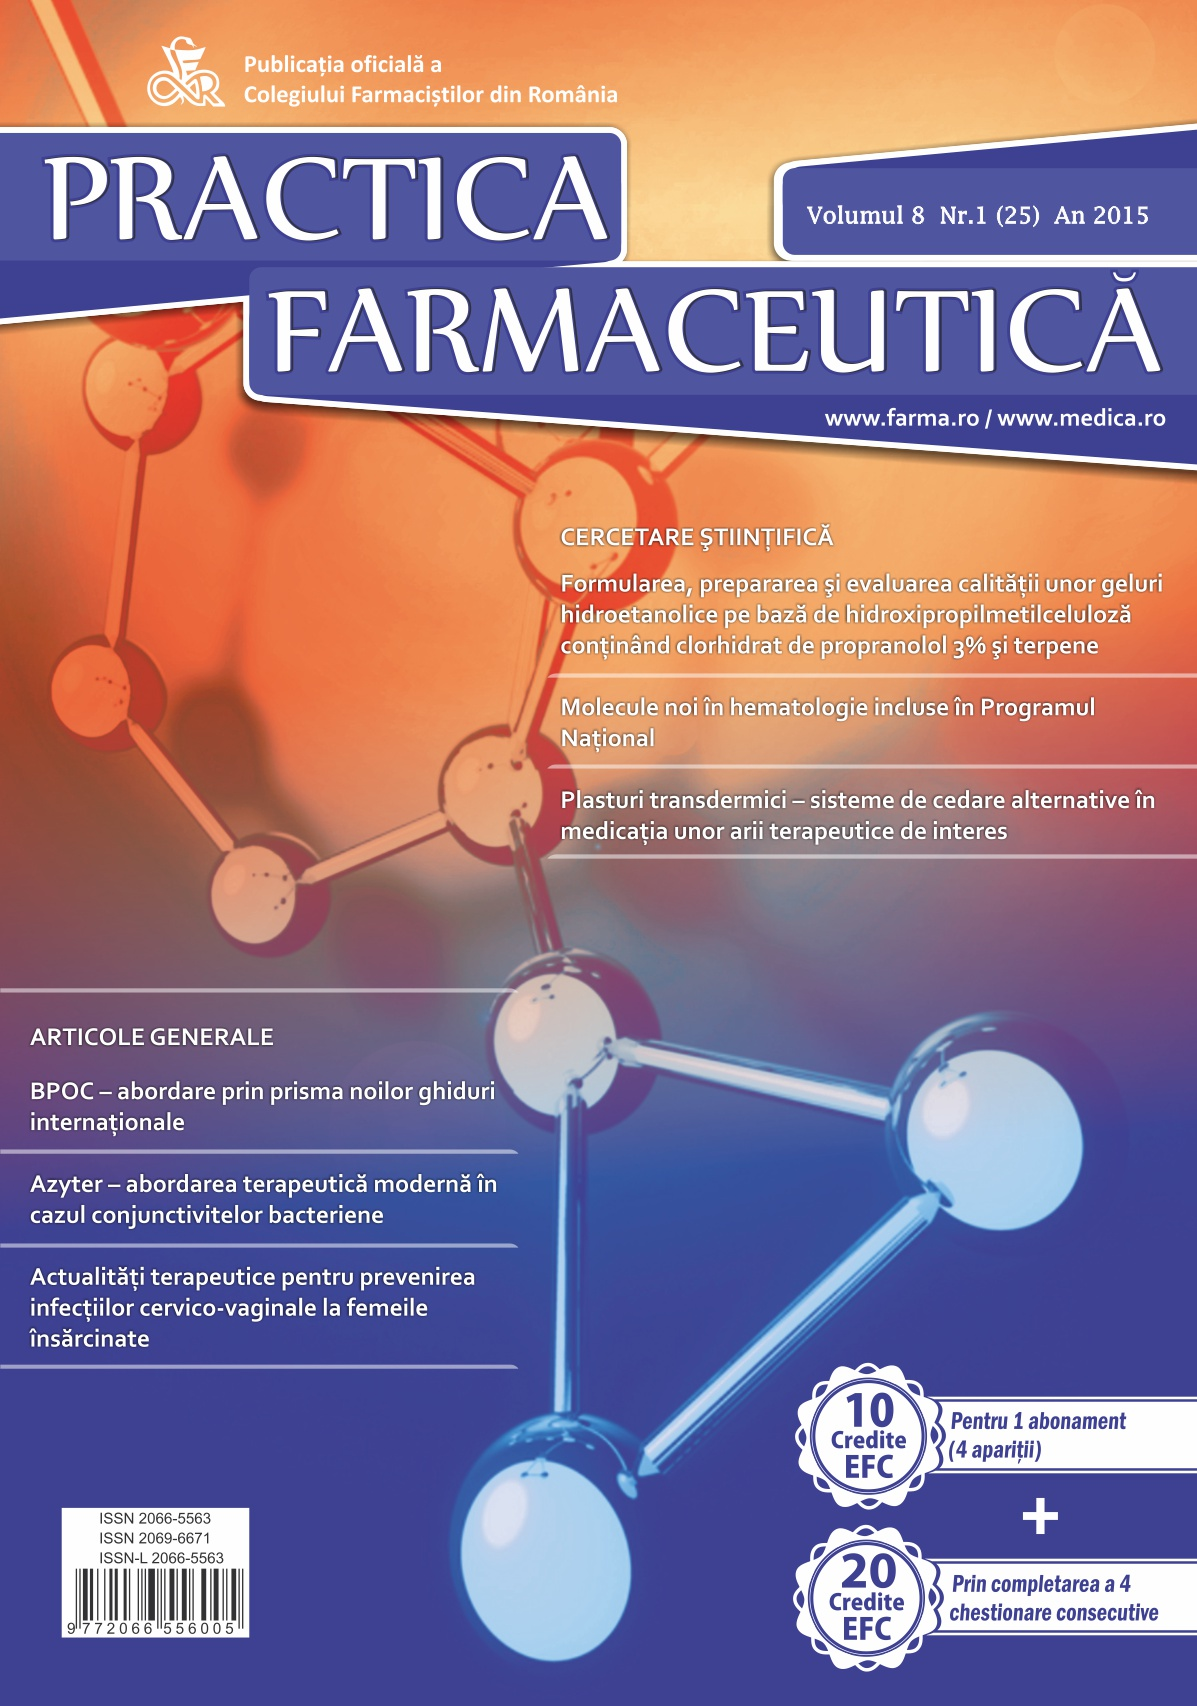 Revista Practica Farmaceutica, Vol. 8, Nr. 1 (25), 2015